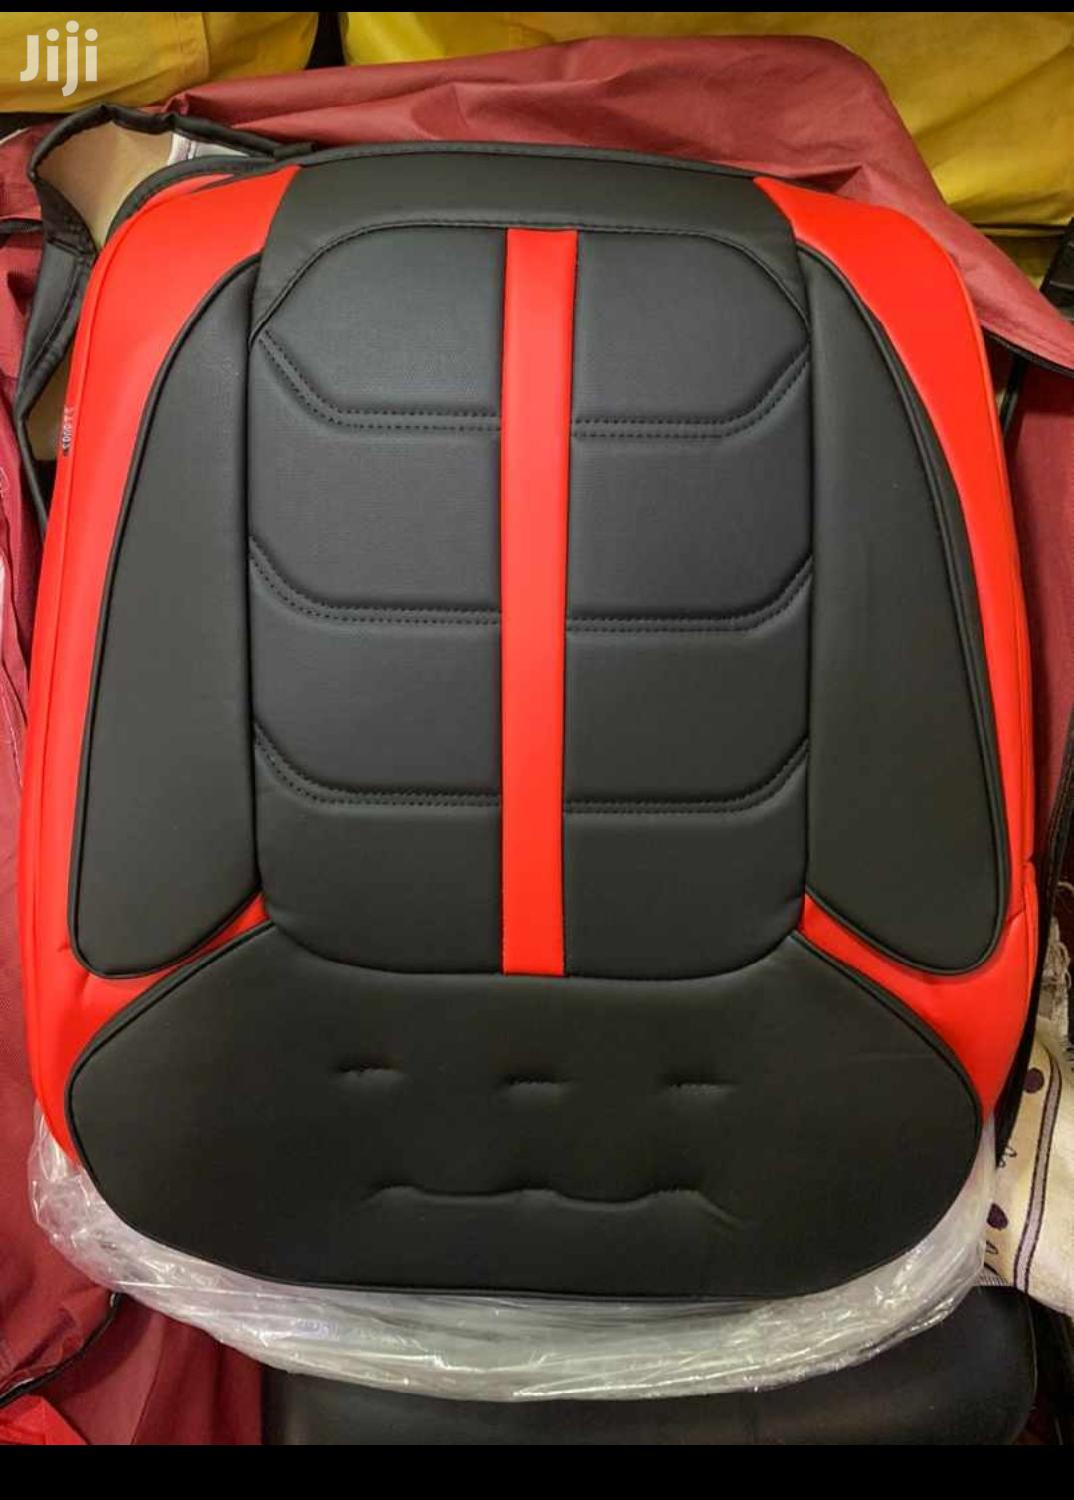 Seatcovers Available